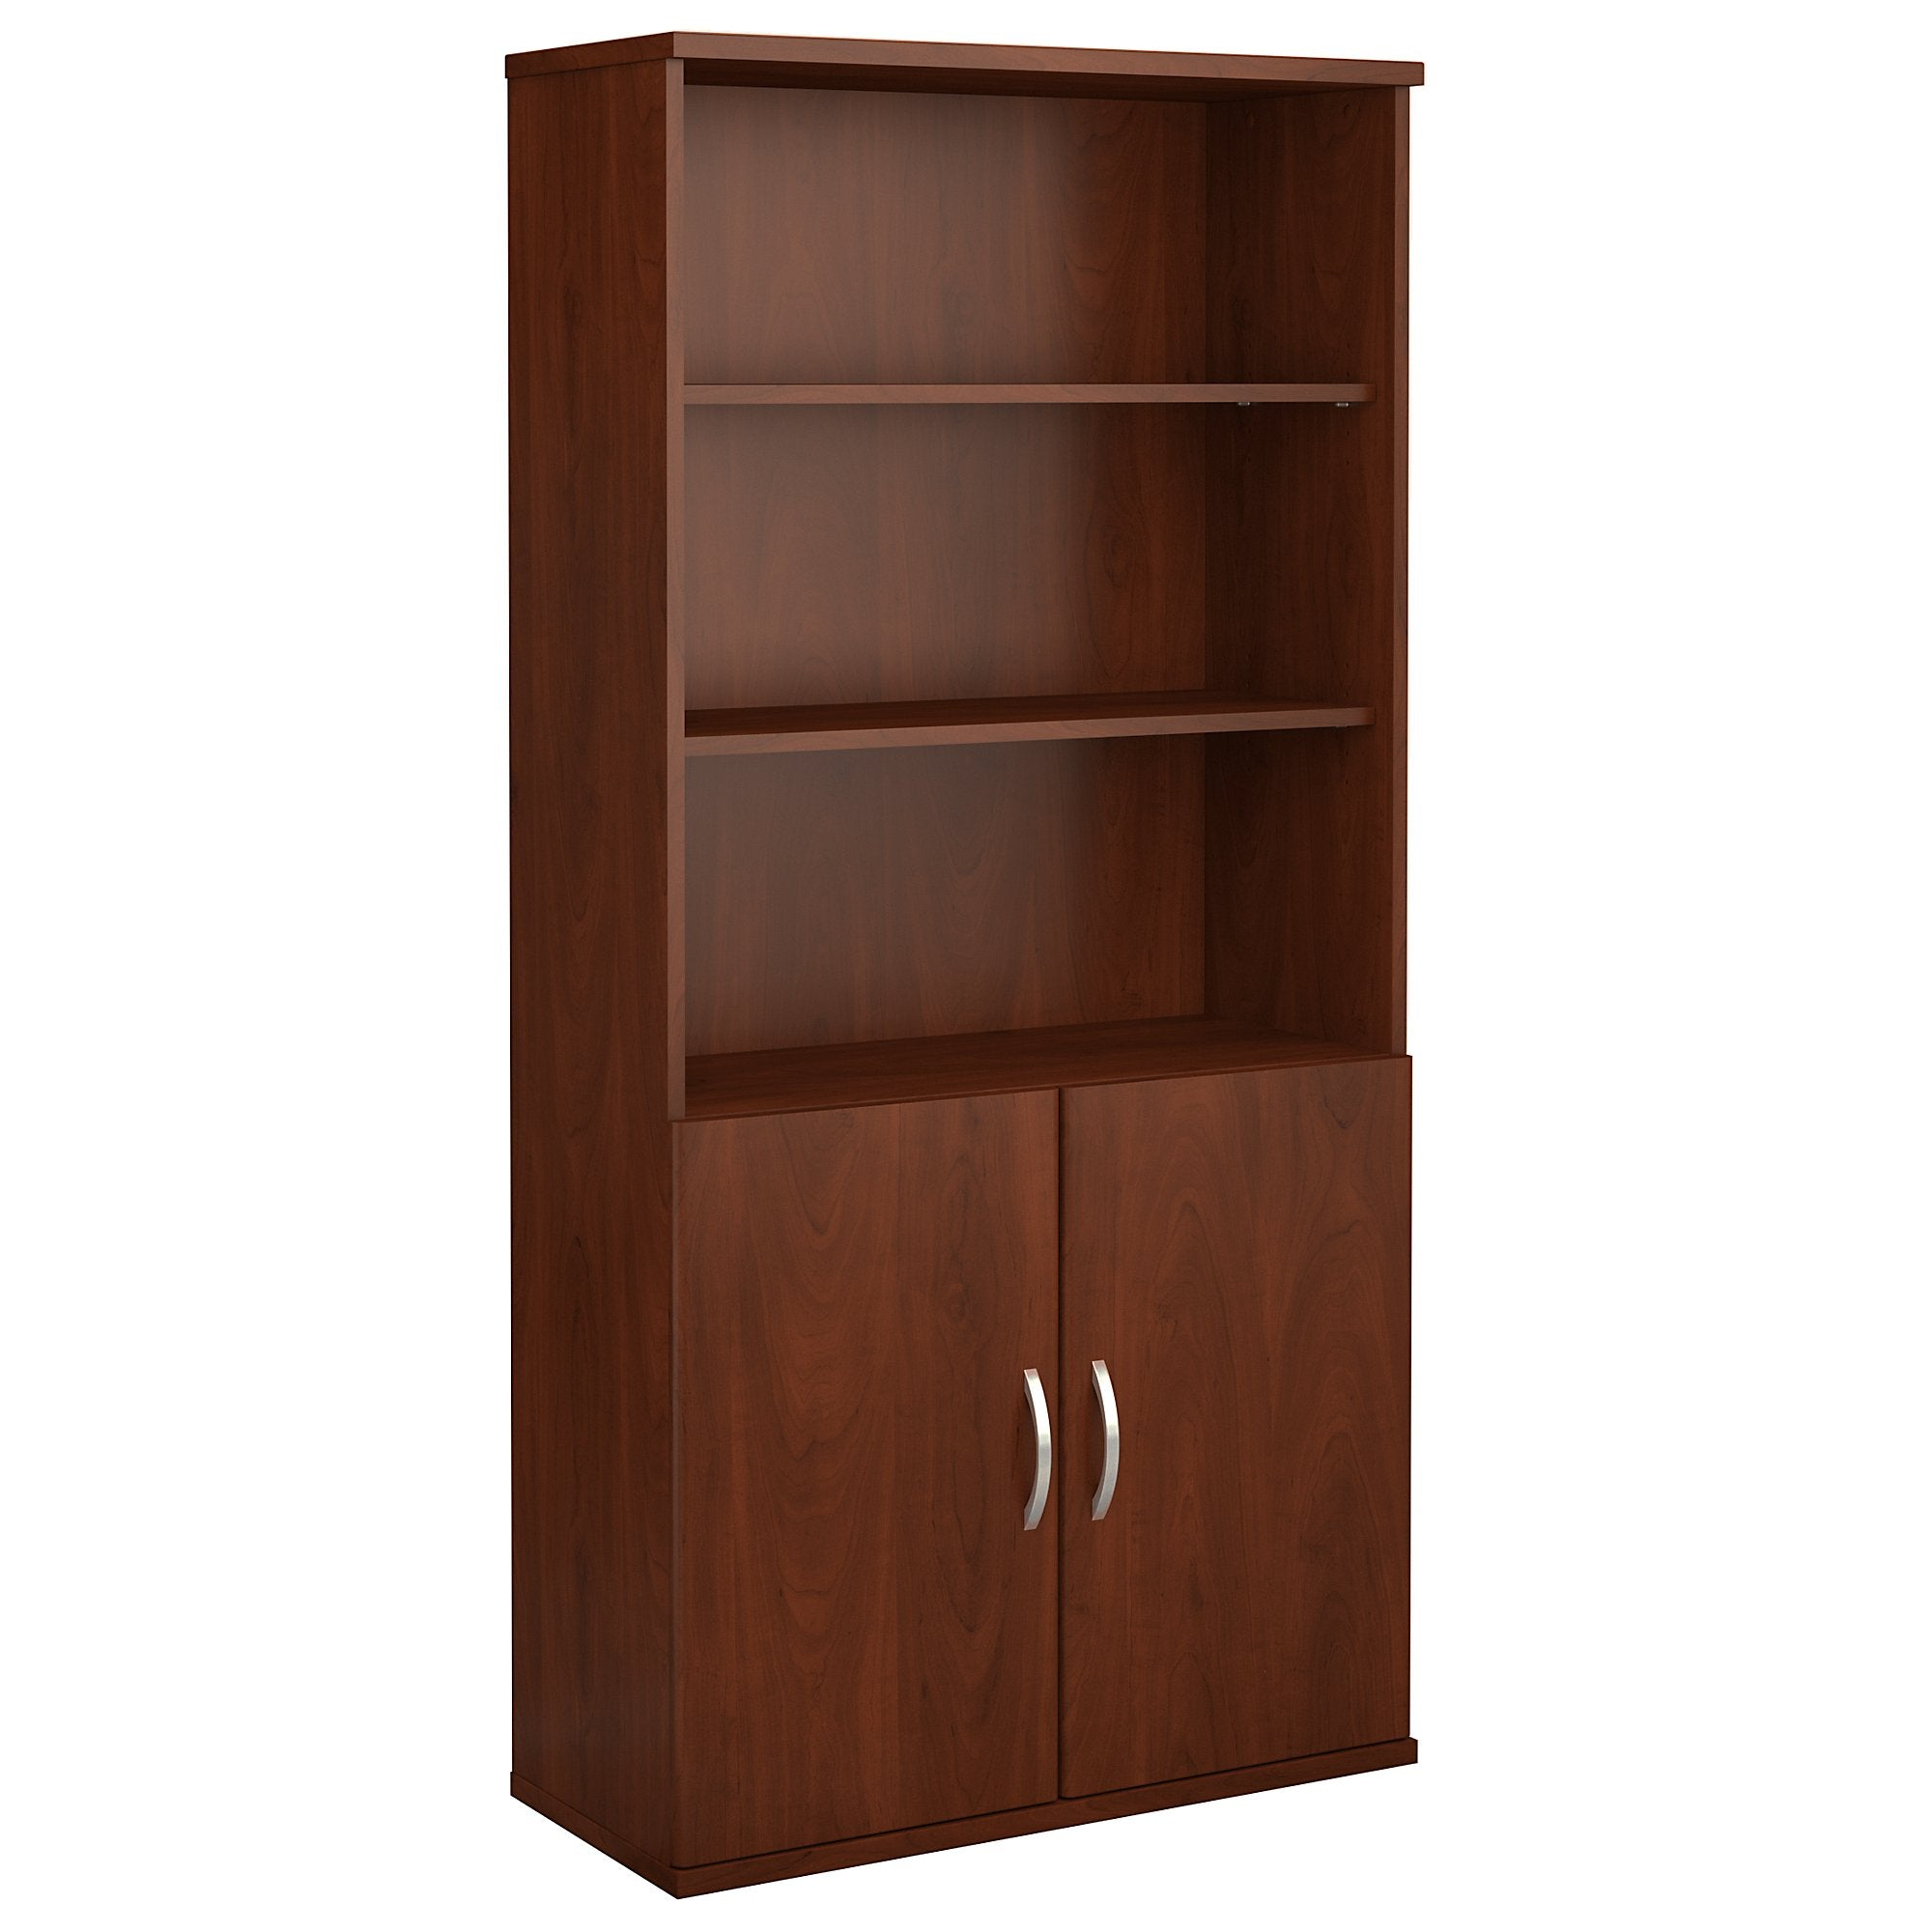 Bush Business Furniture 5 Shelf Bookcase with Doors-Hansen Cherry